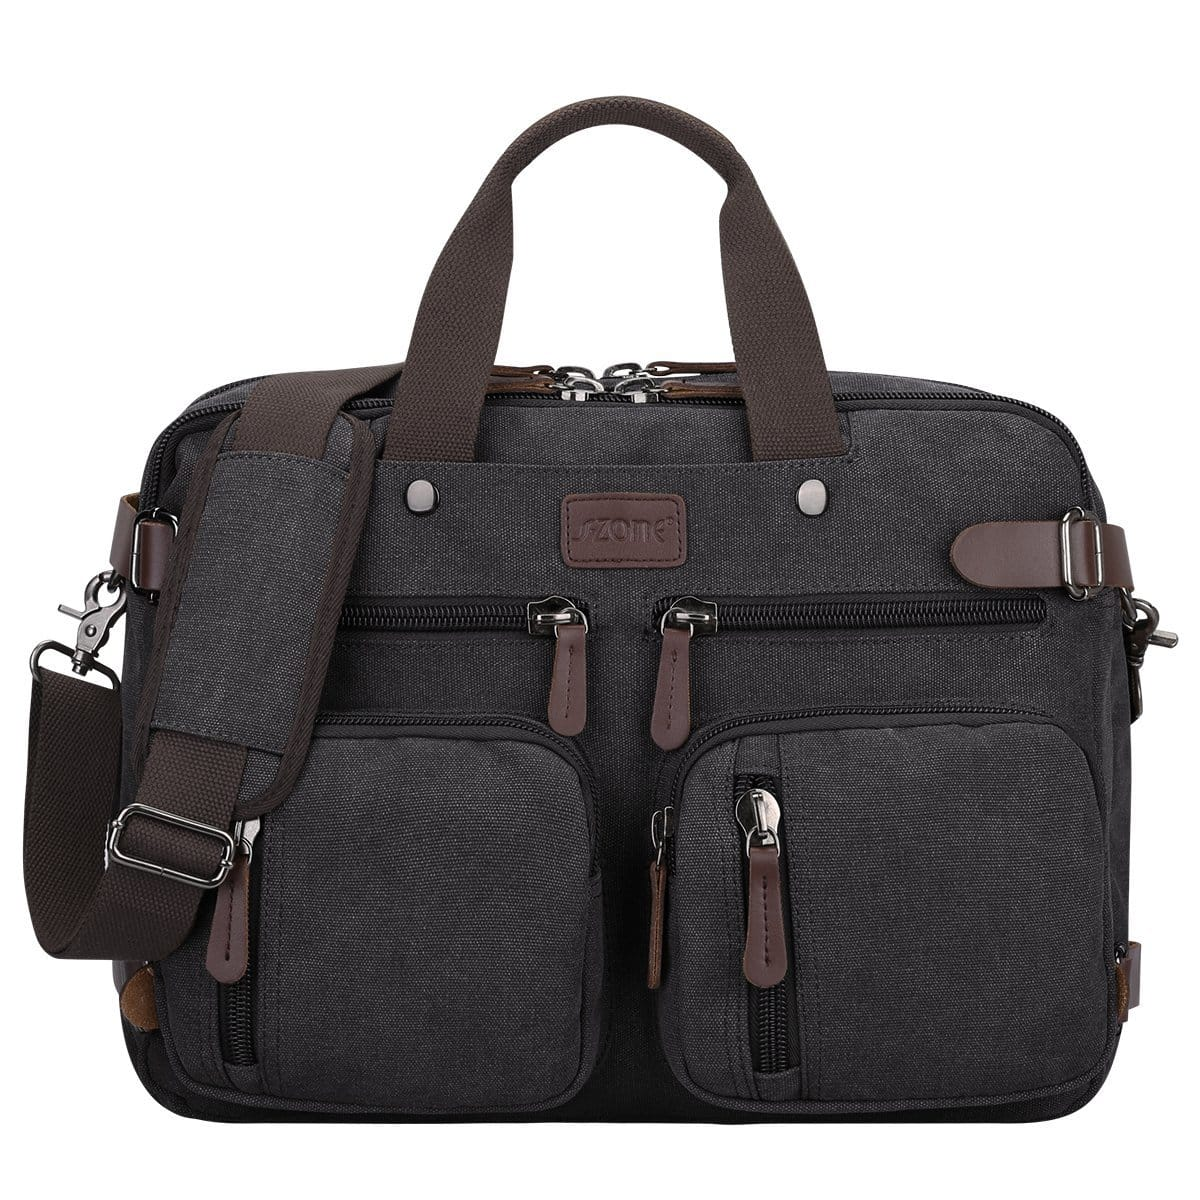 Save 25% or more on S-ZONE Men's Bags $11.19